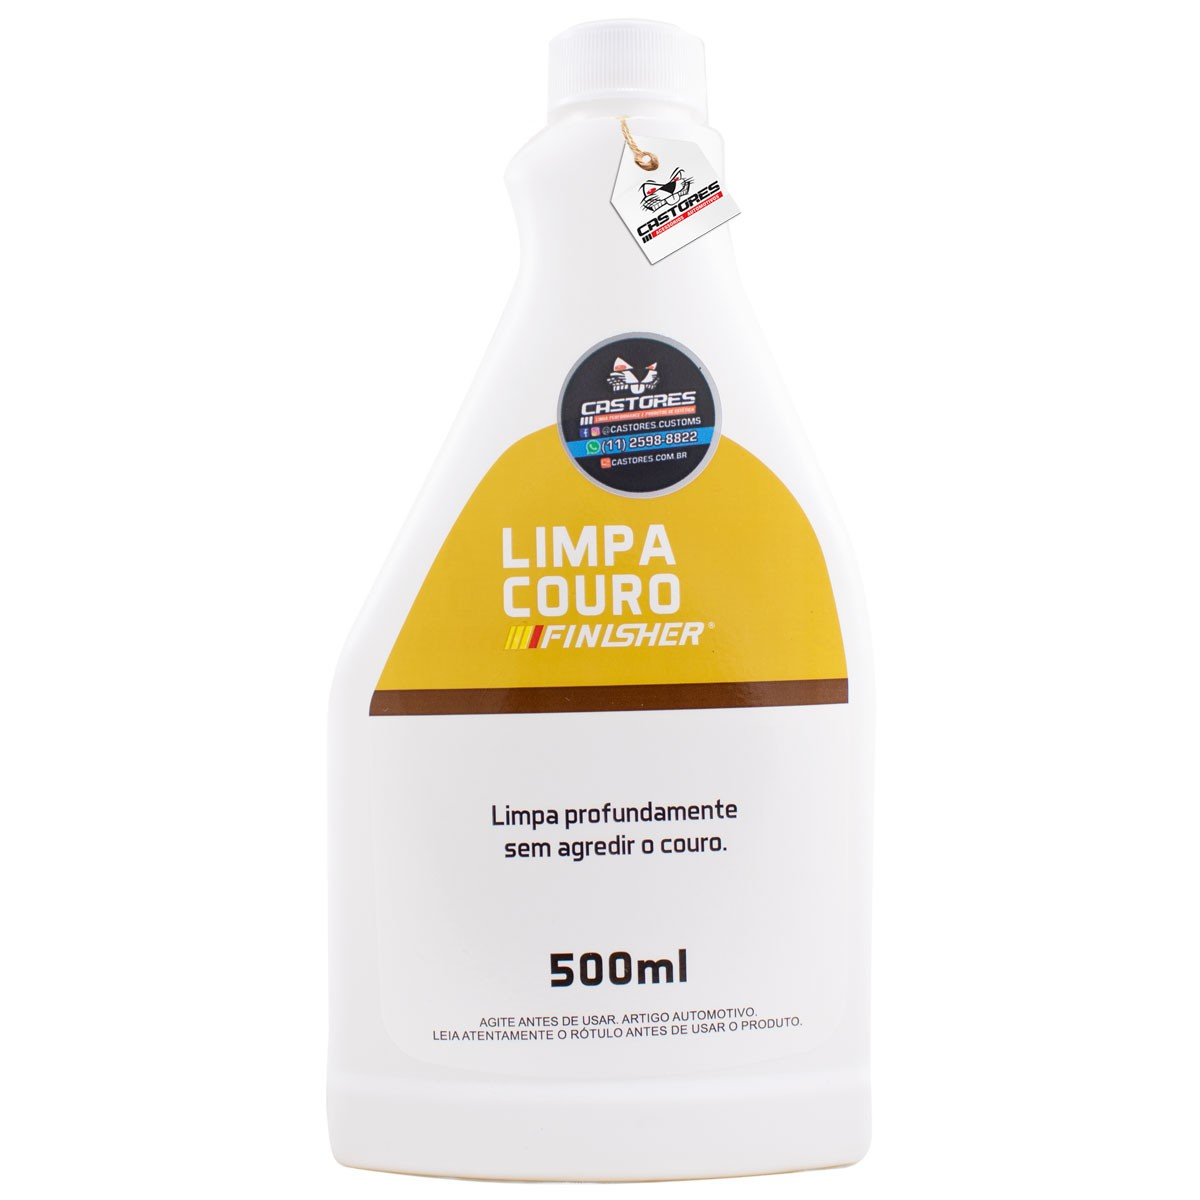 Finisher Limpa Couro Spray - 500ml